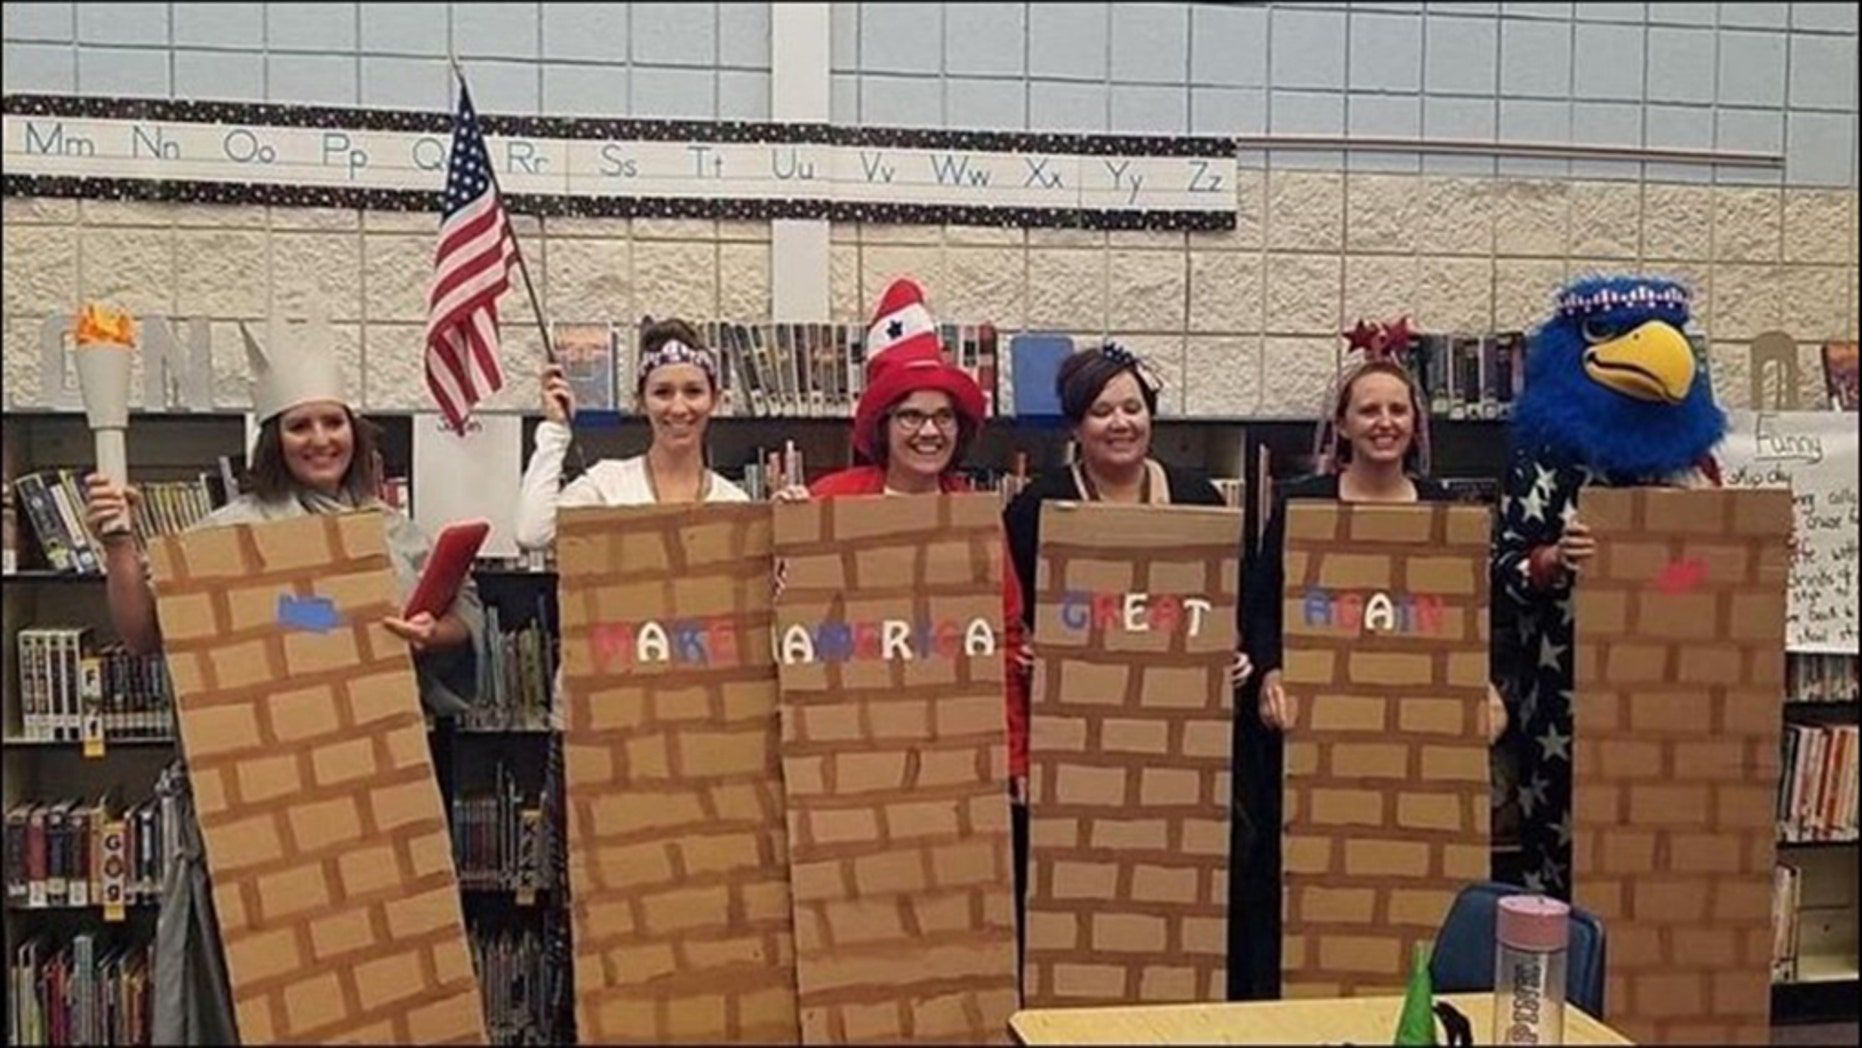 Offensive teacher costumes prompt Idaho school investigation